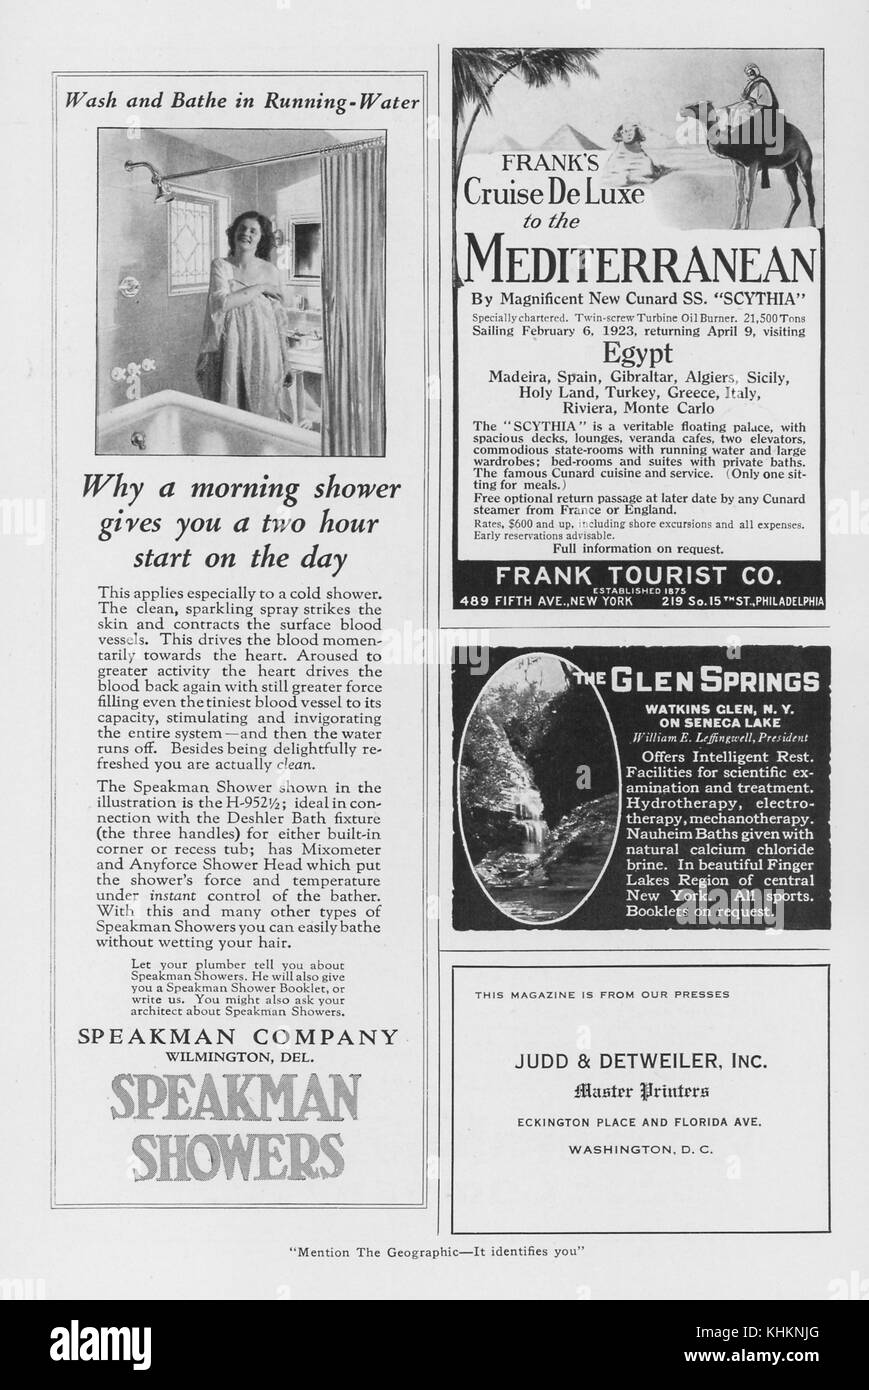 A Magazine Layout Featuring Four Advertisements The Half Page Ad Features Products From Speakman Showers